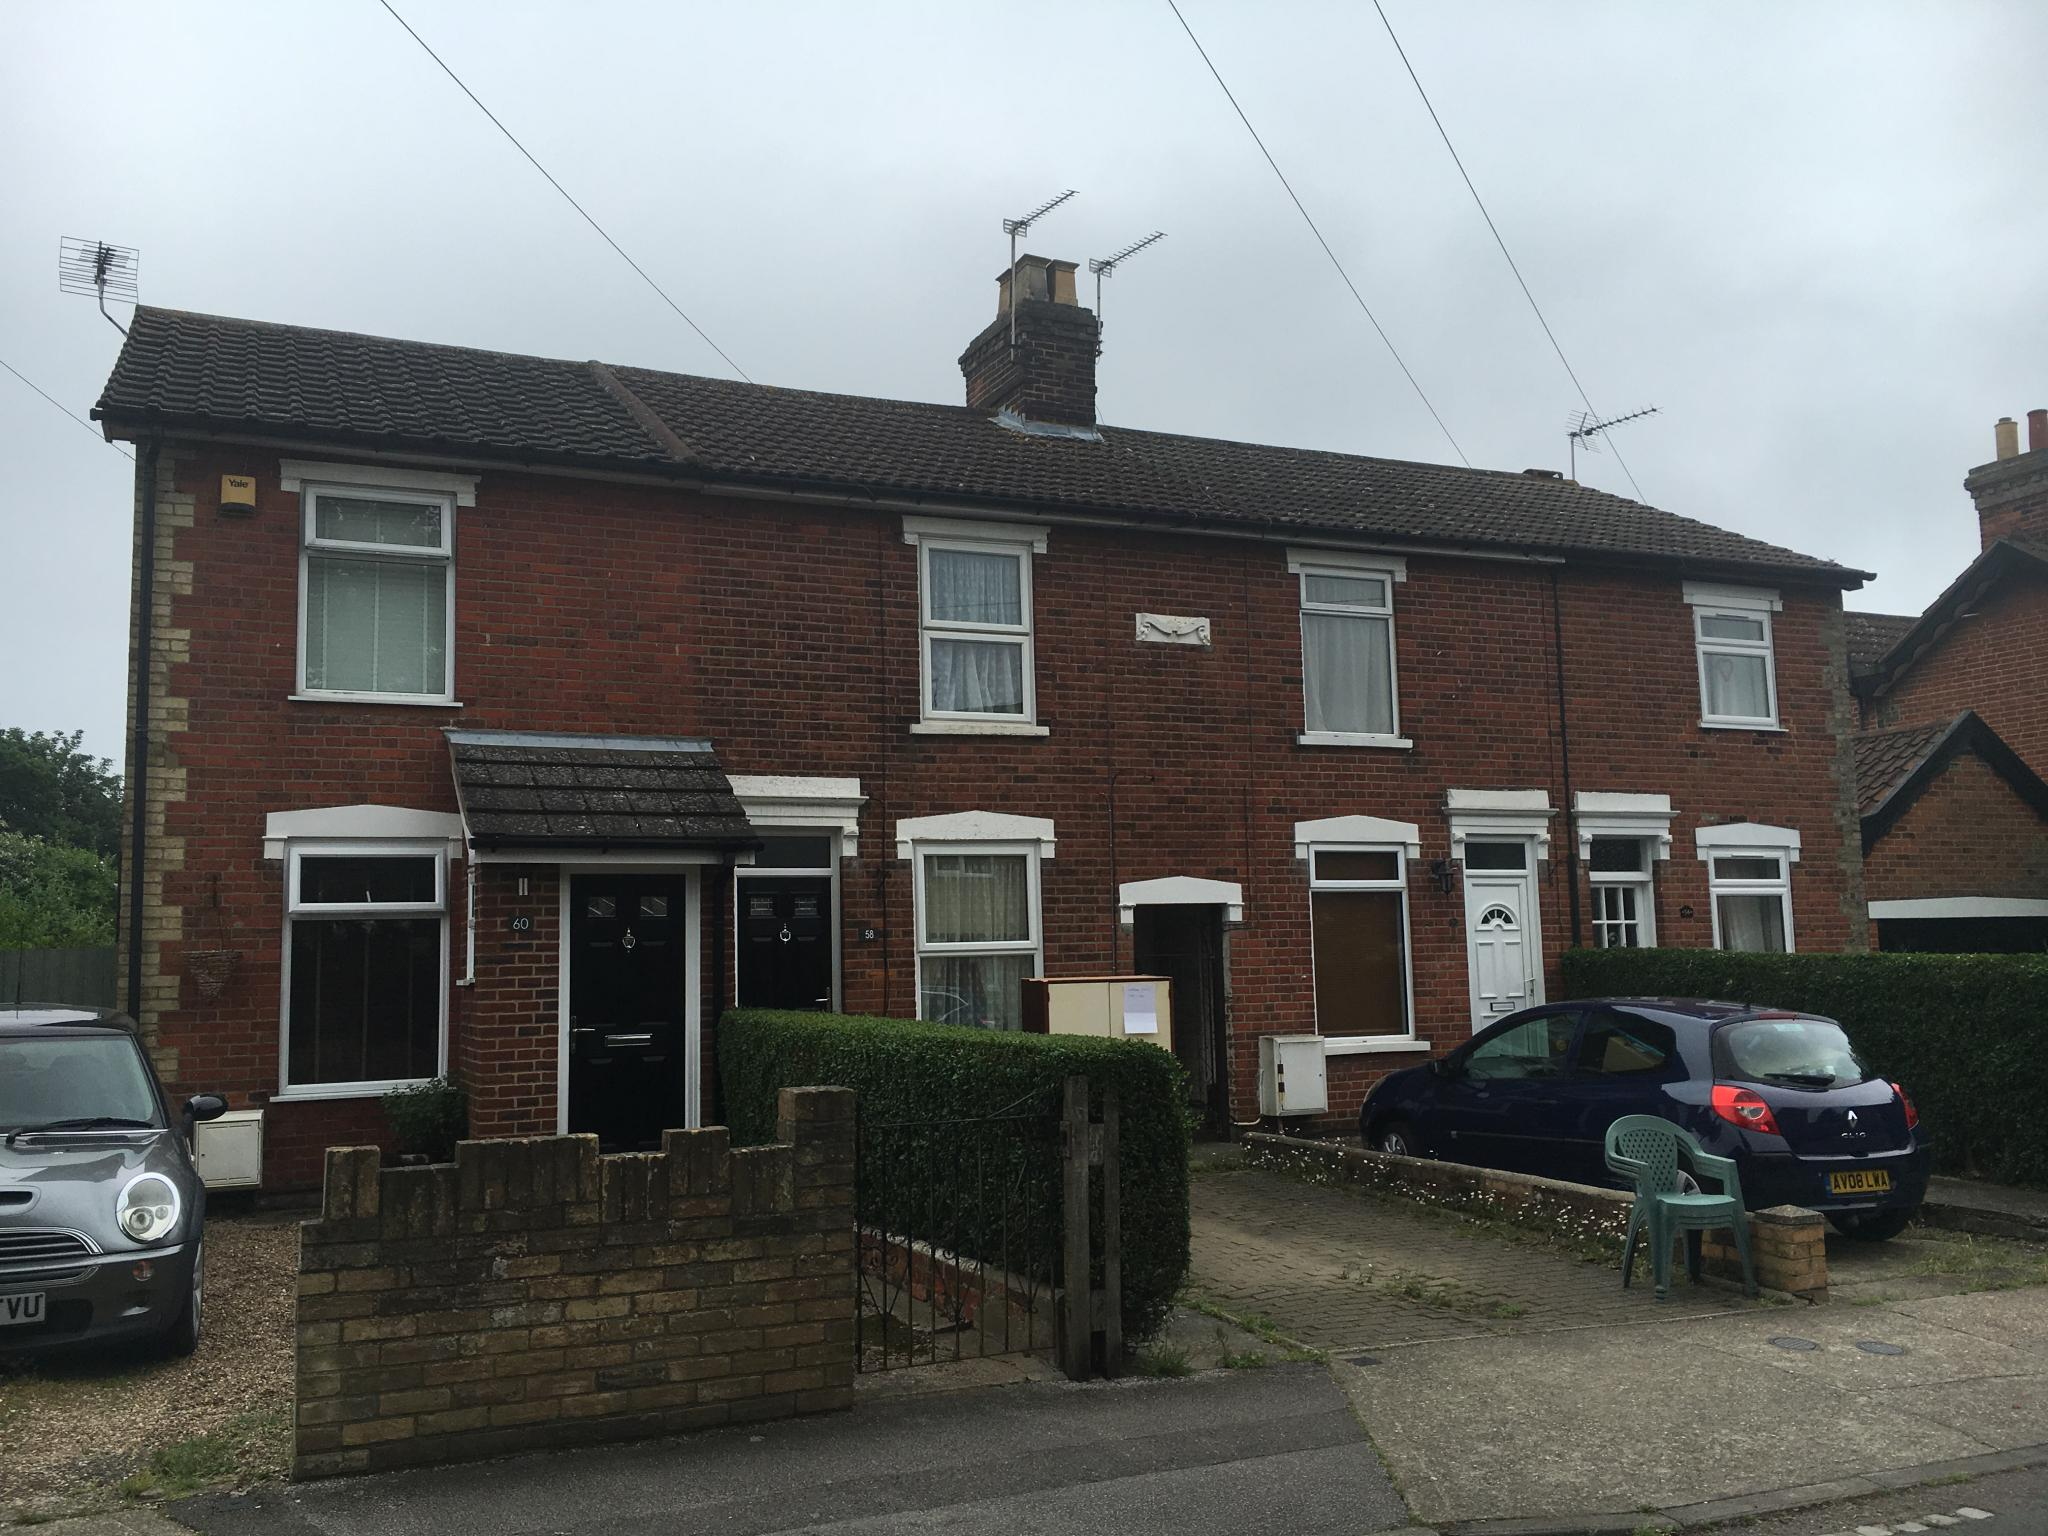 2 bedroom mid terraced house Let in Ipswich - Photograph 1